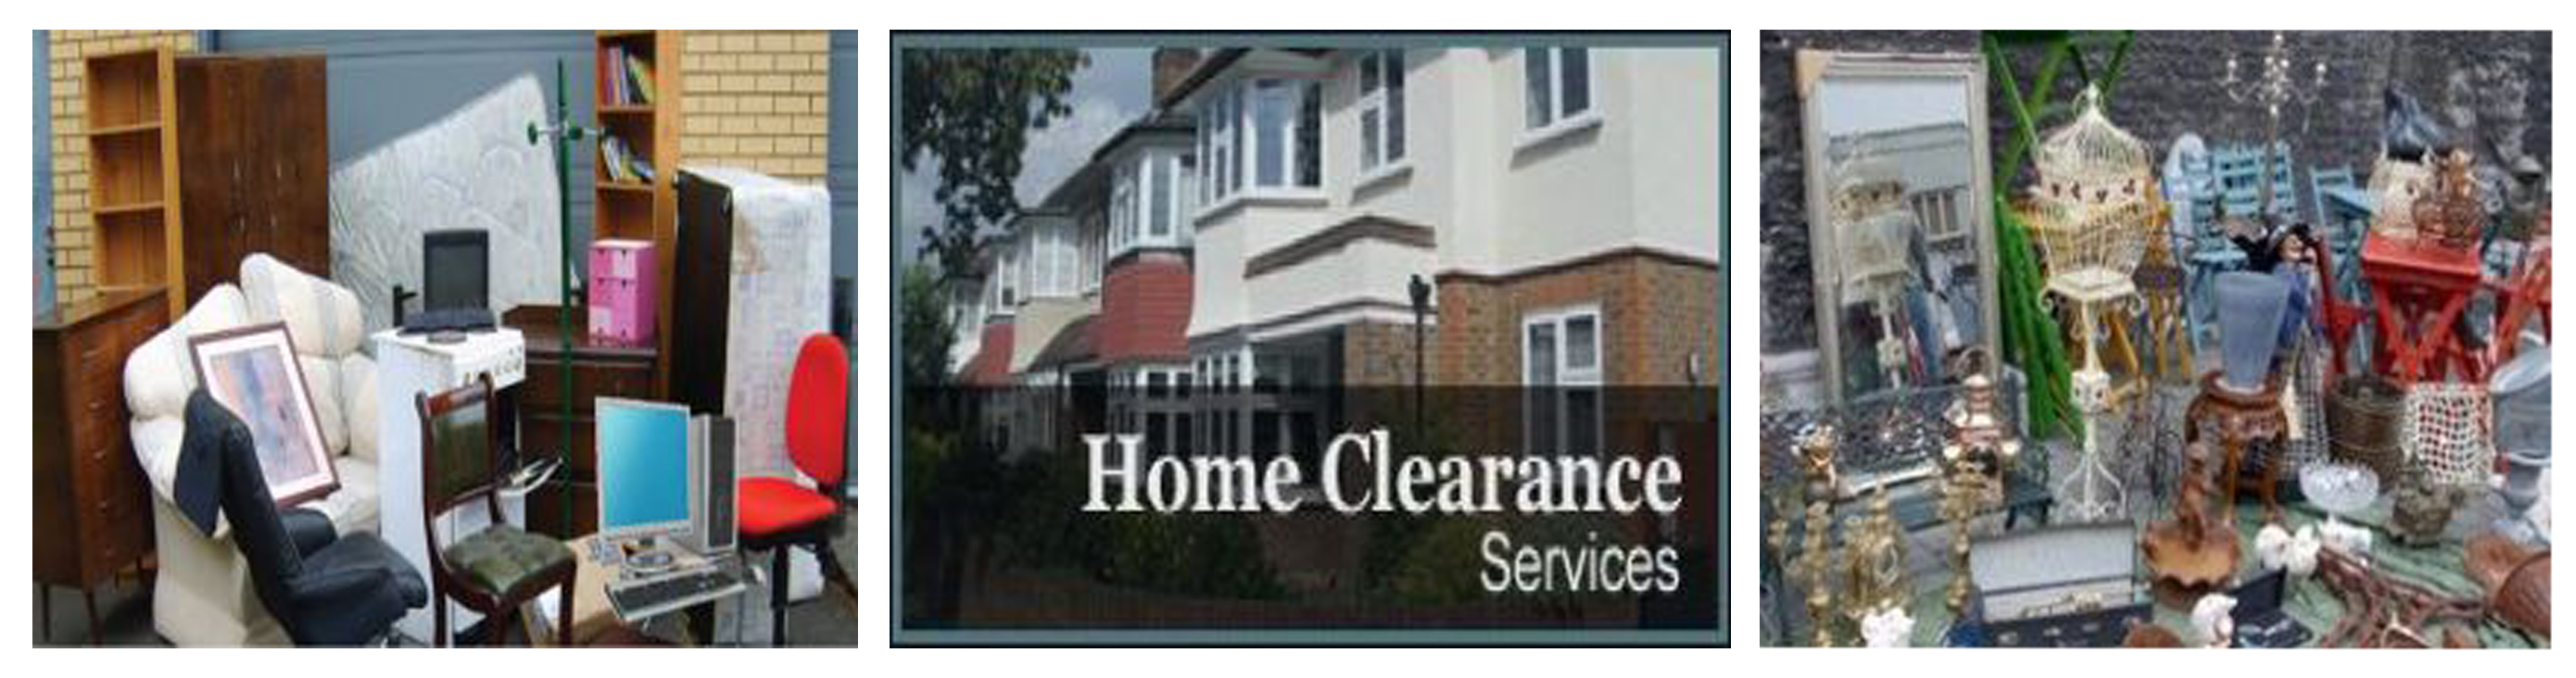 Home Clearance Peterborough House Clearance Recycling Rather Than Landfilling